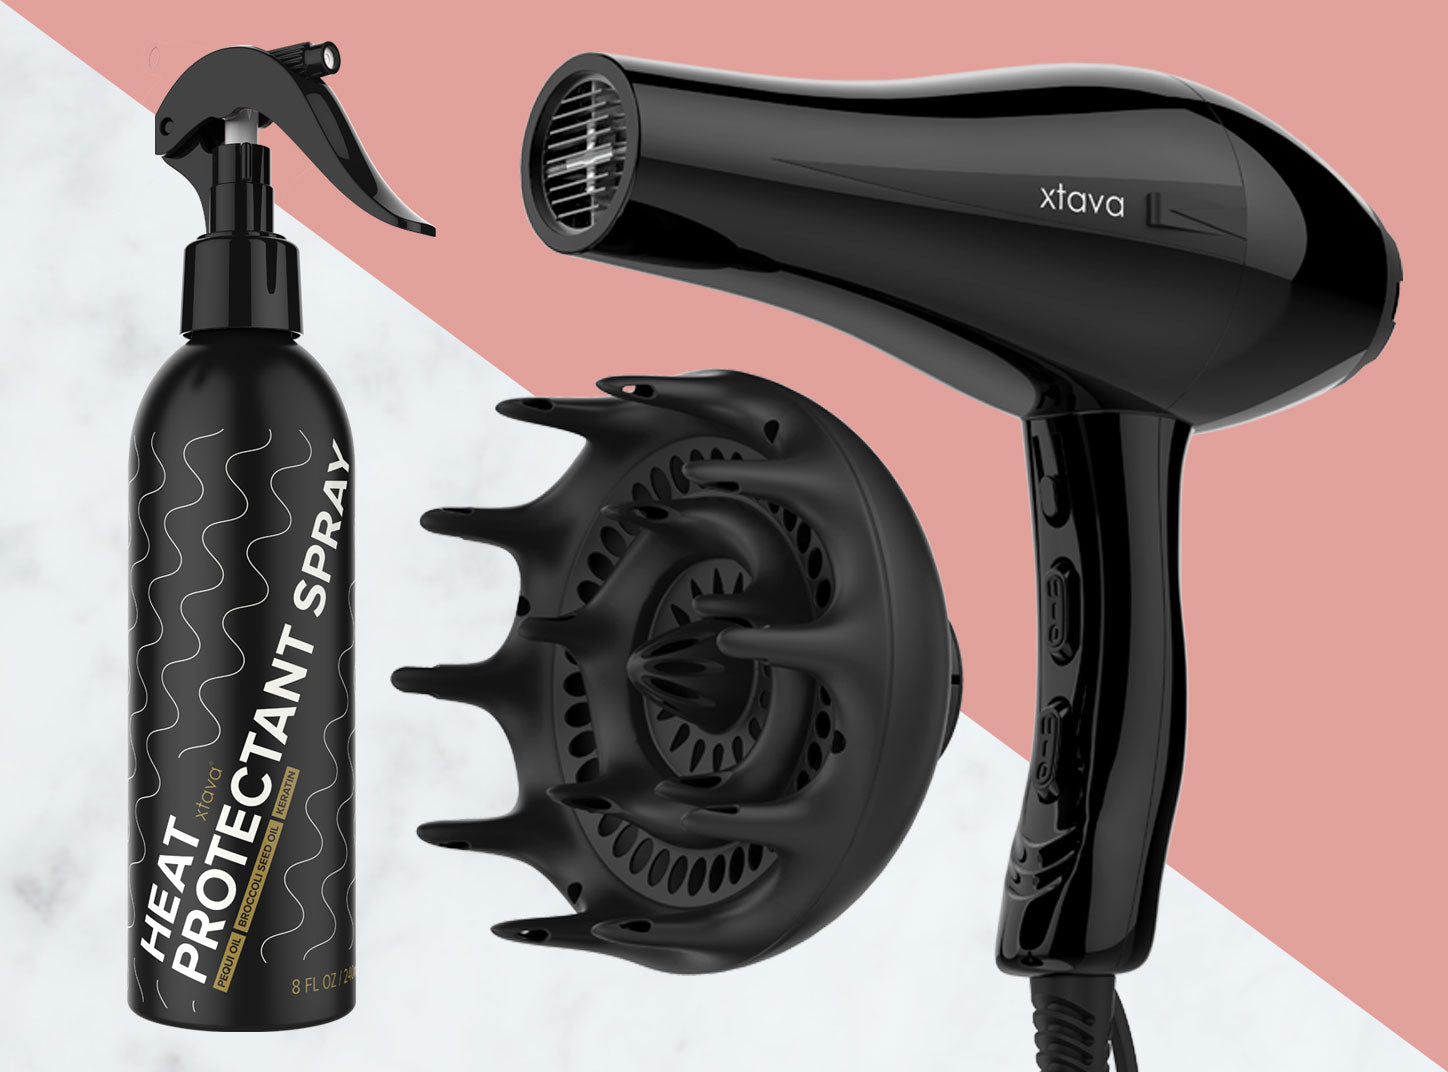 Xtava Products: Pro Hair Dryer, Black Orchid Diffuser and Heat Protectant Spray